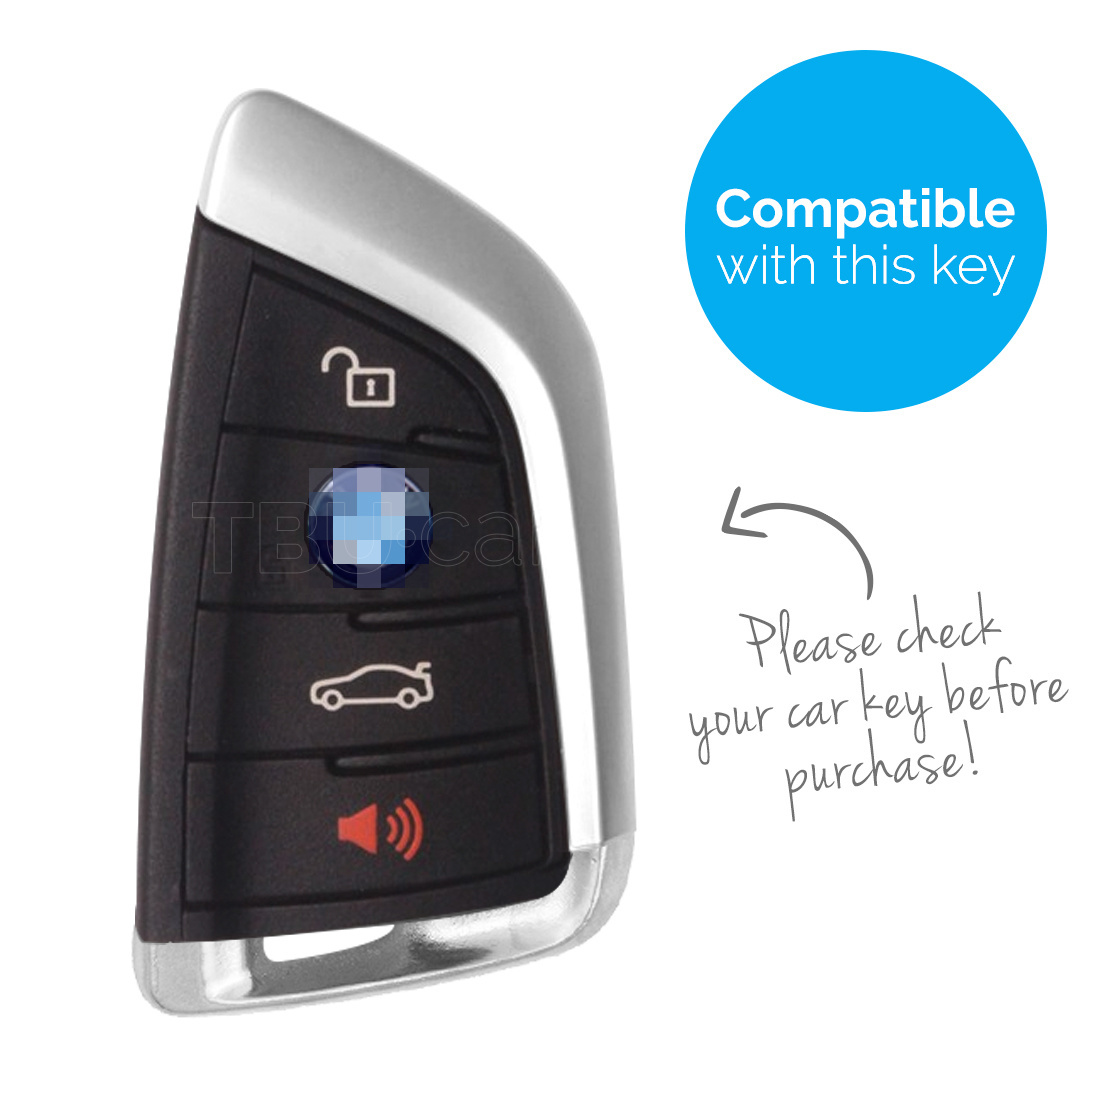 TBU car TBU car Car key cover compatible with BMW - TPU Protective Remote Key Shell - FOB Case Cover - Chrome